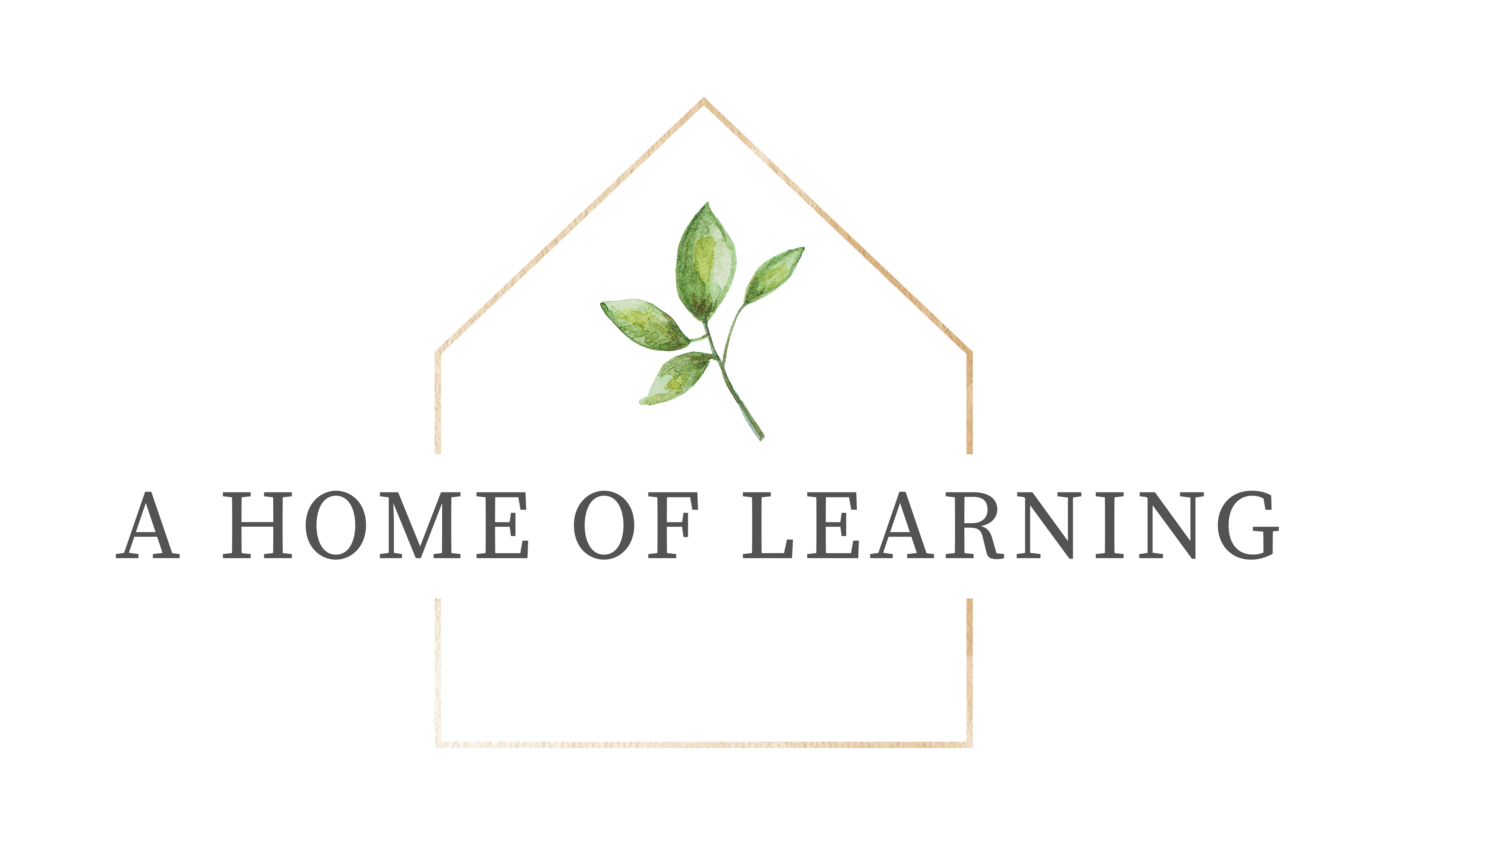 A Home of Learning